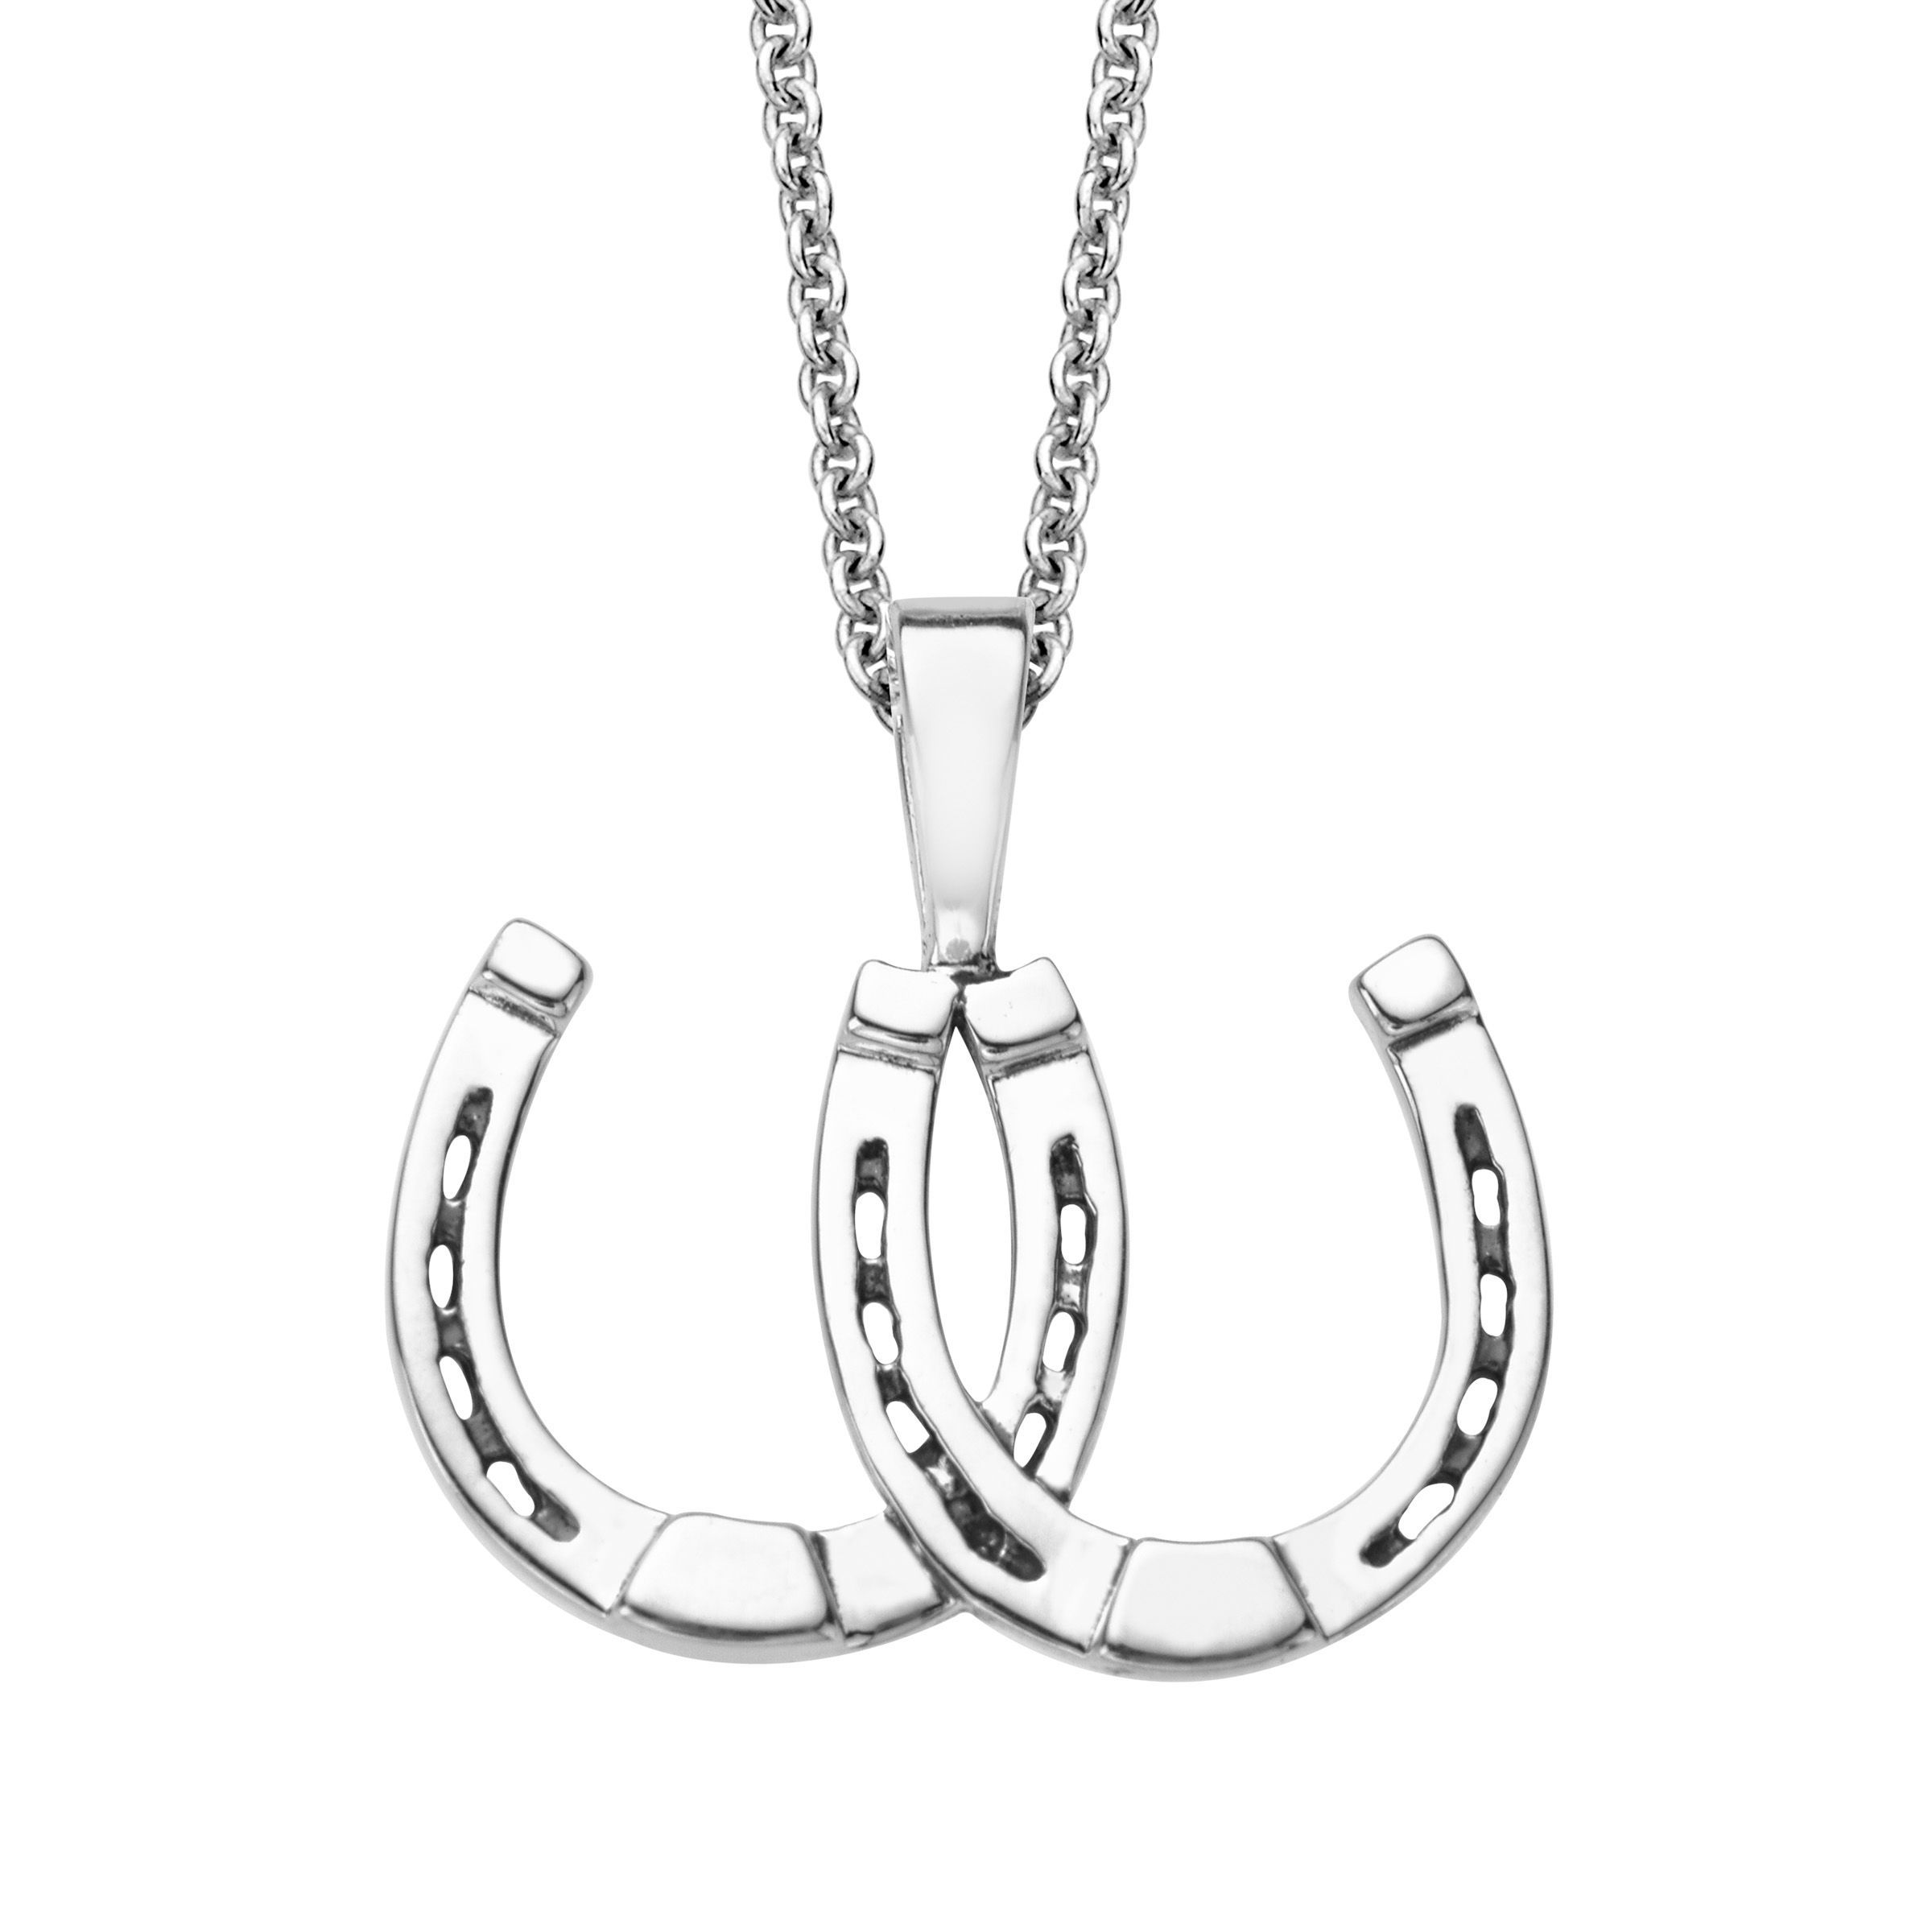 mens silver product necklaces men jewelry gift mmen for s him original horseshoe necklace pendant